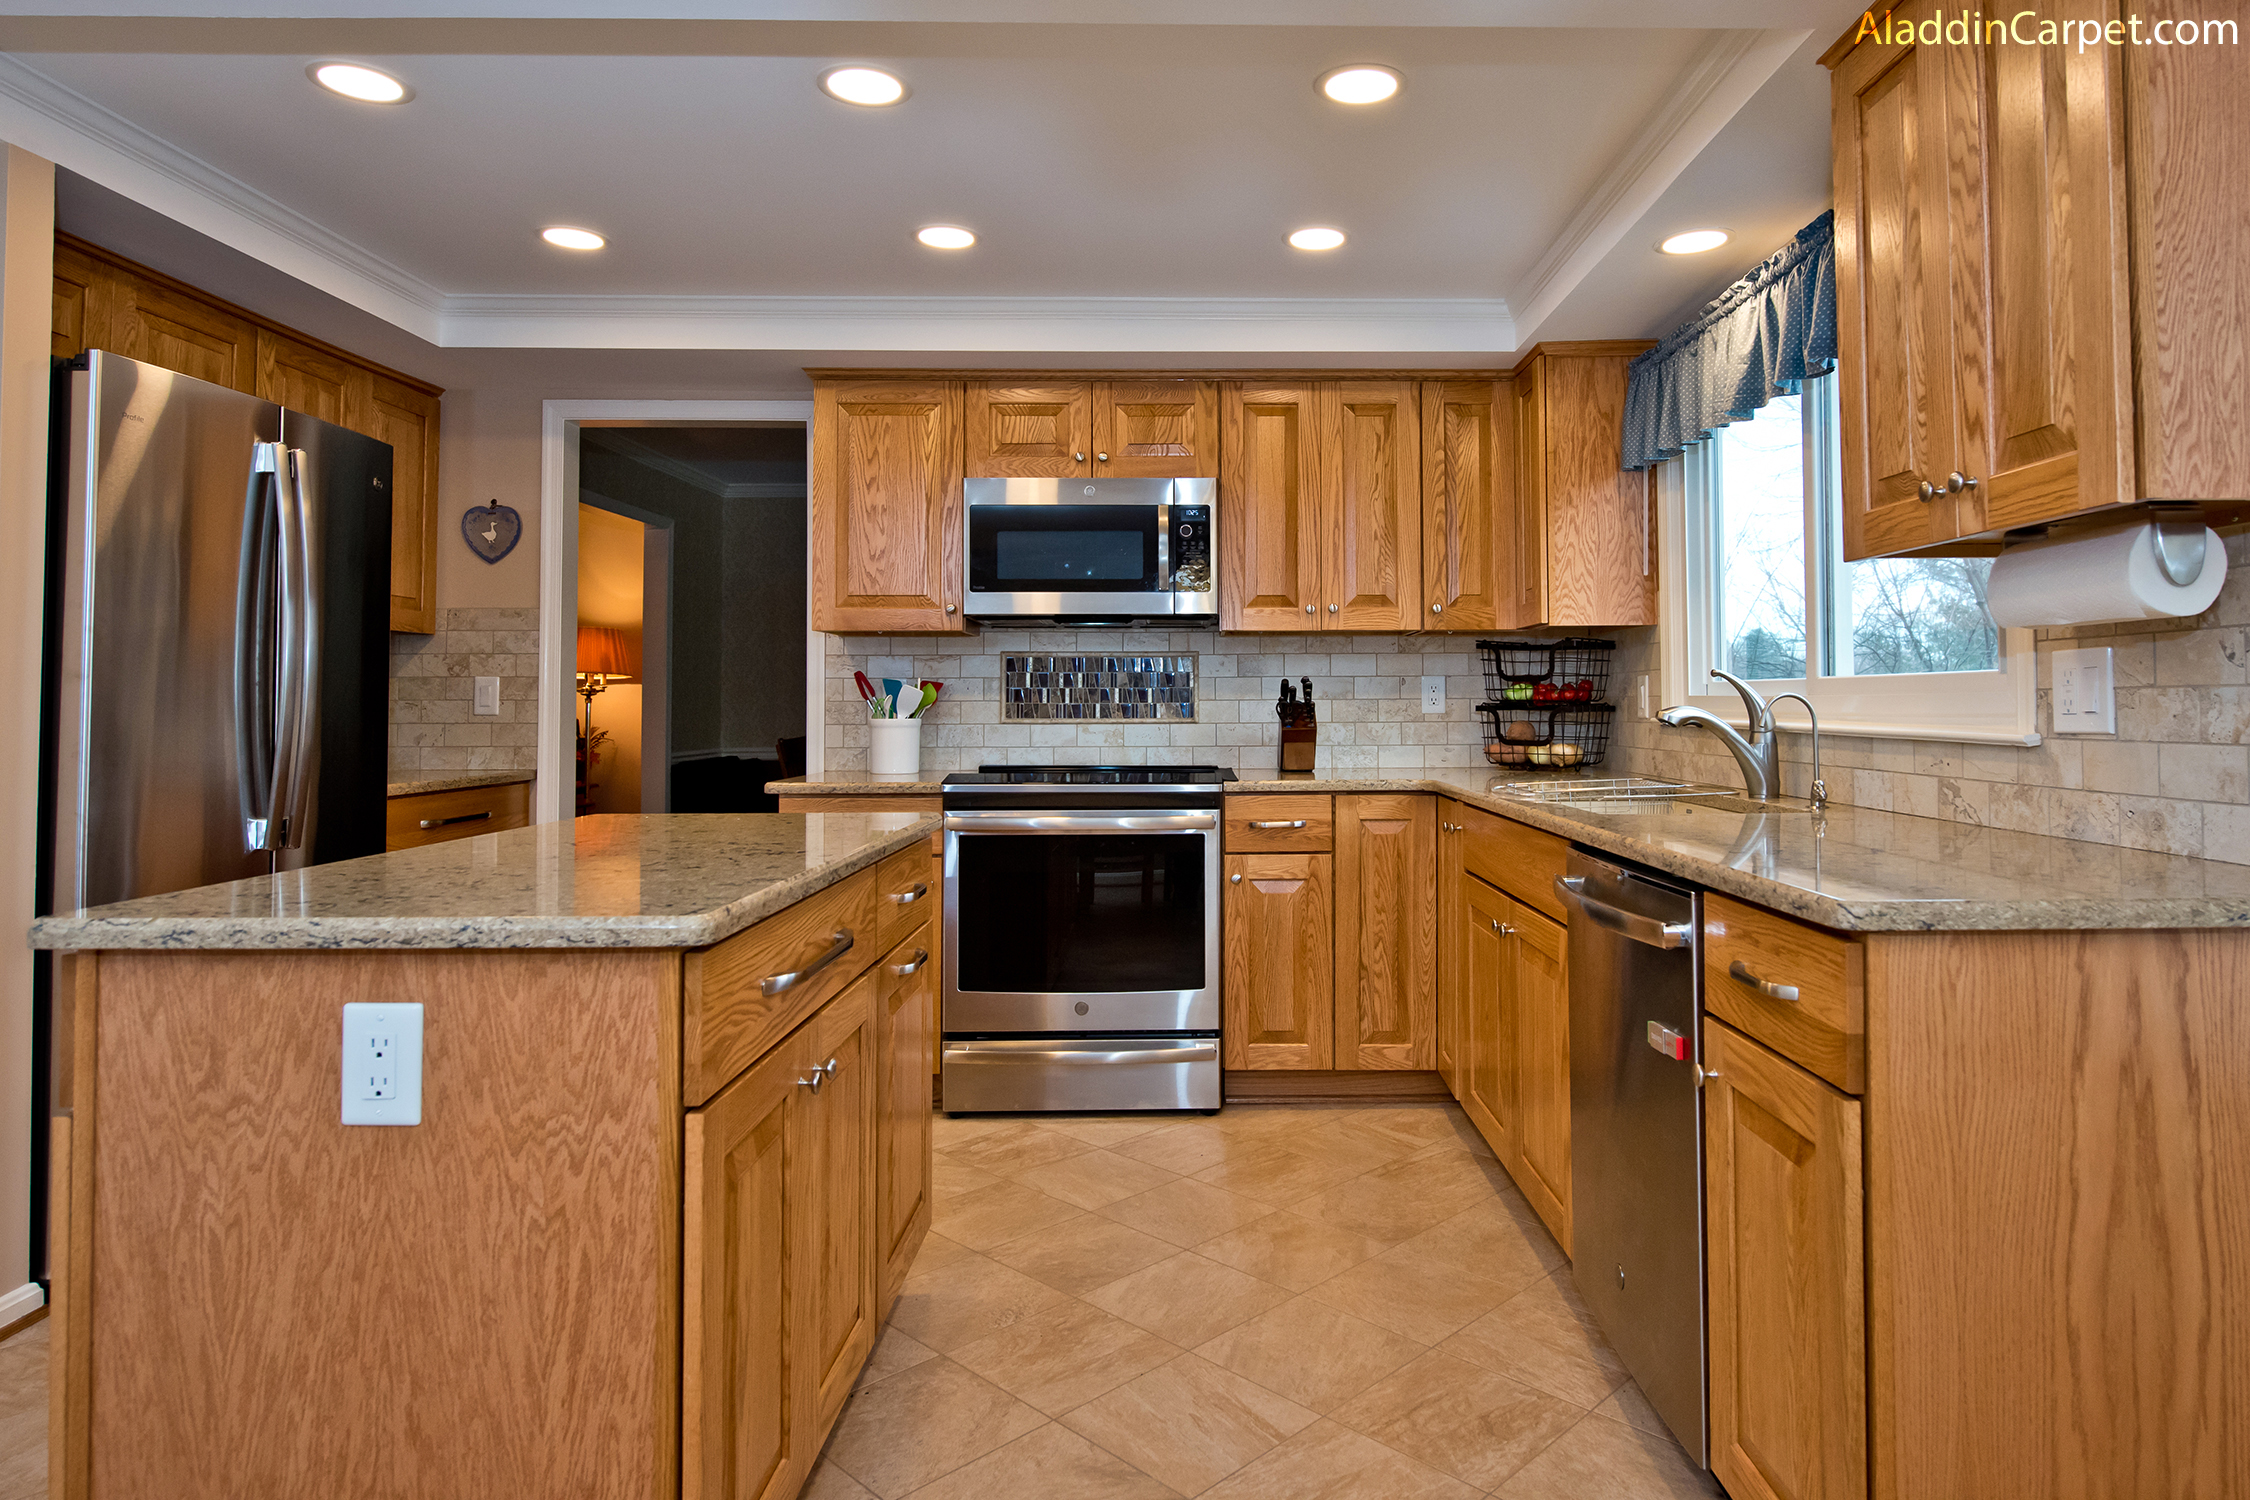 Kitchen Remodel Gaithersburg Md 20878 Aladdin Carpet Your Local Carpet And Flooring Store